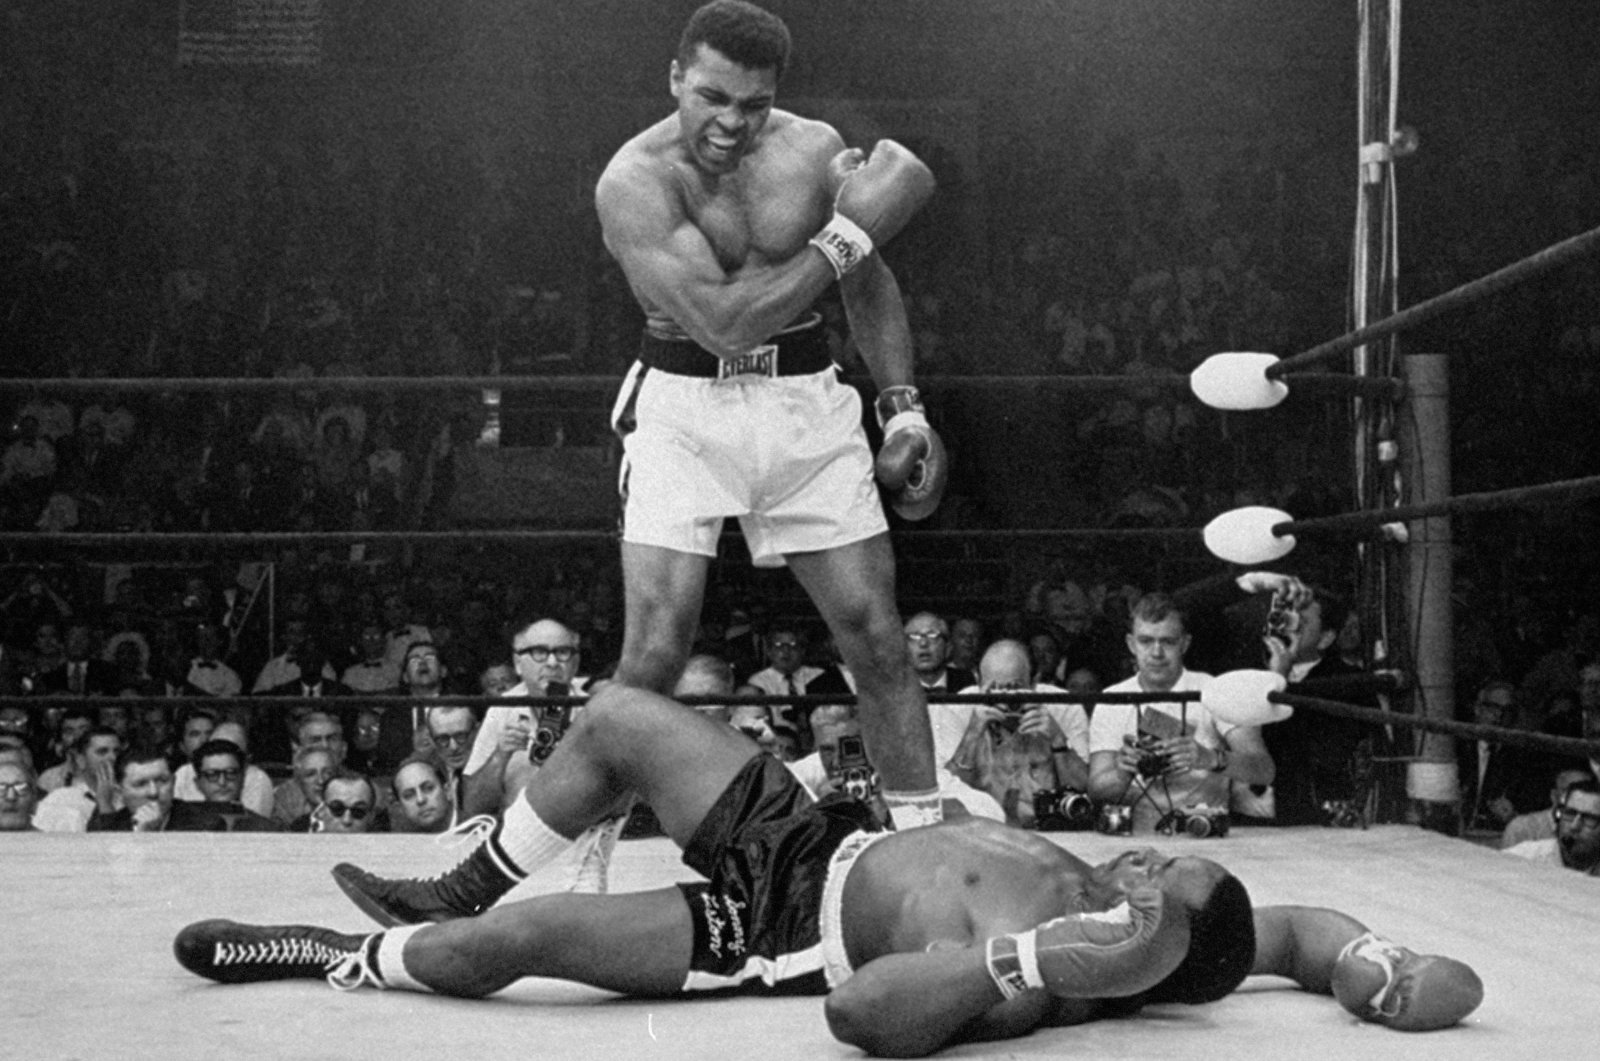 Heavyweight champion Muhammad Ali stands over fallen challenger Sonny Liston shortly after dropping him with a short hard right to the jaw in Lewiston, Maine, U.S., May 25, 1965.